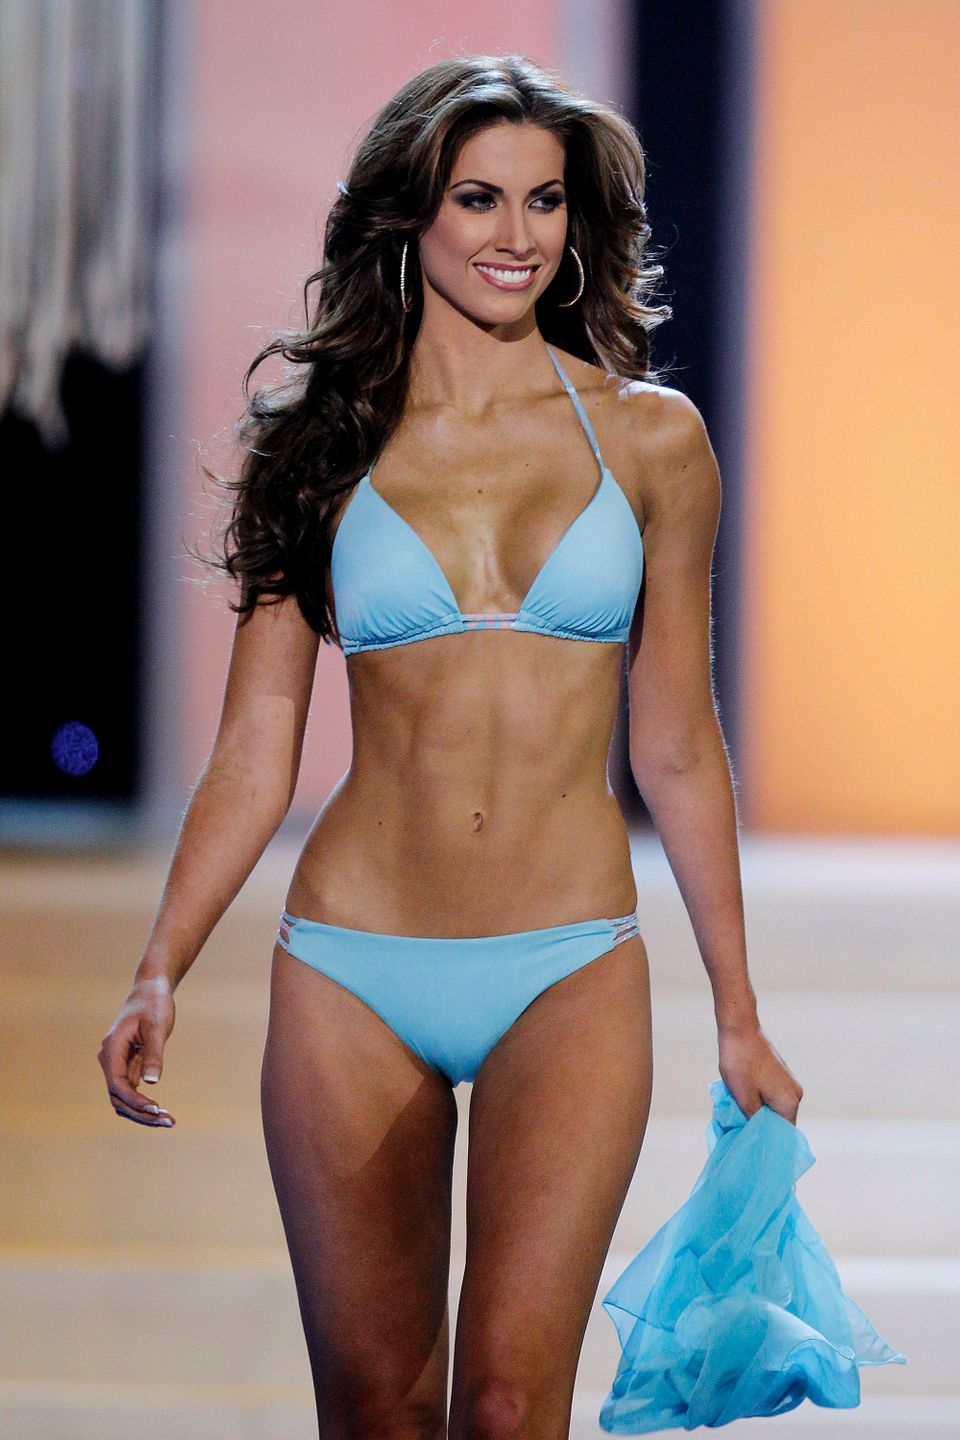 Miss Alabama USA Katherine Webb competes in the swimwear competition during the 2012 Miss USA pageant at the Planet Hollywood